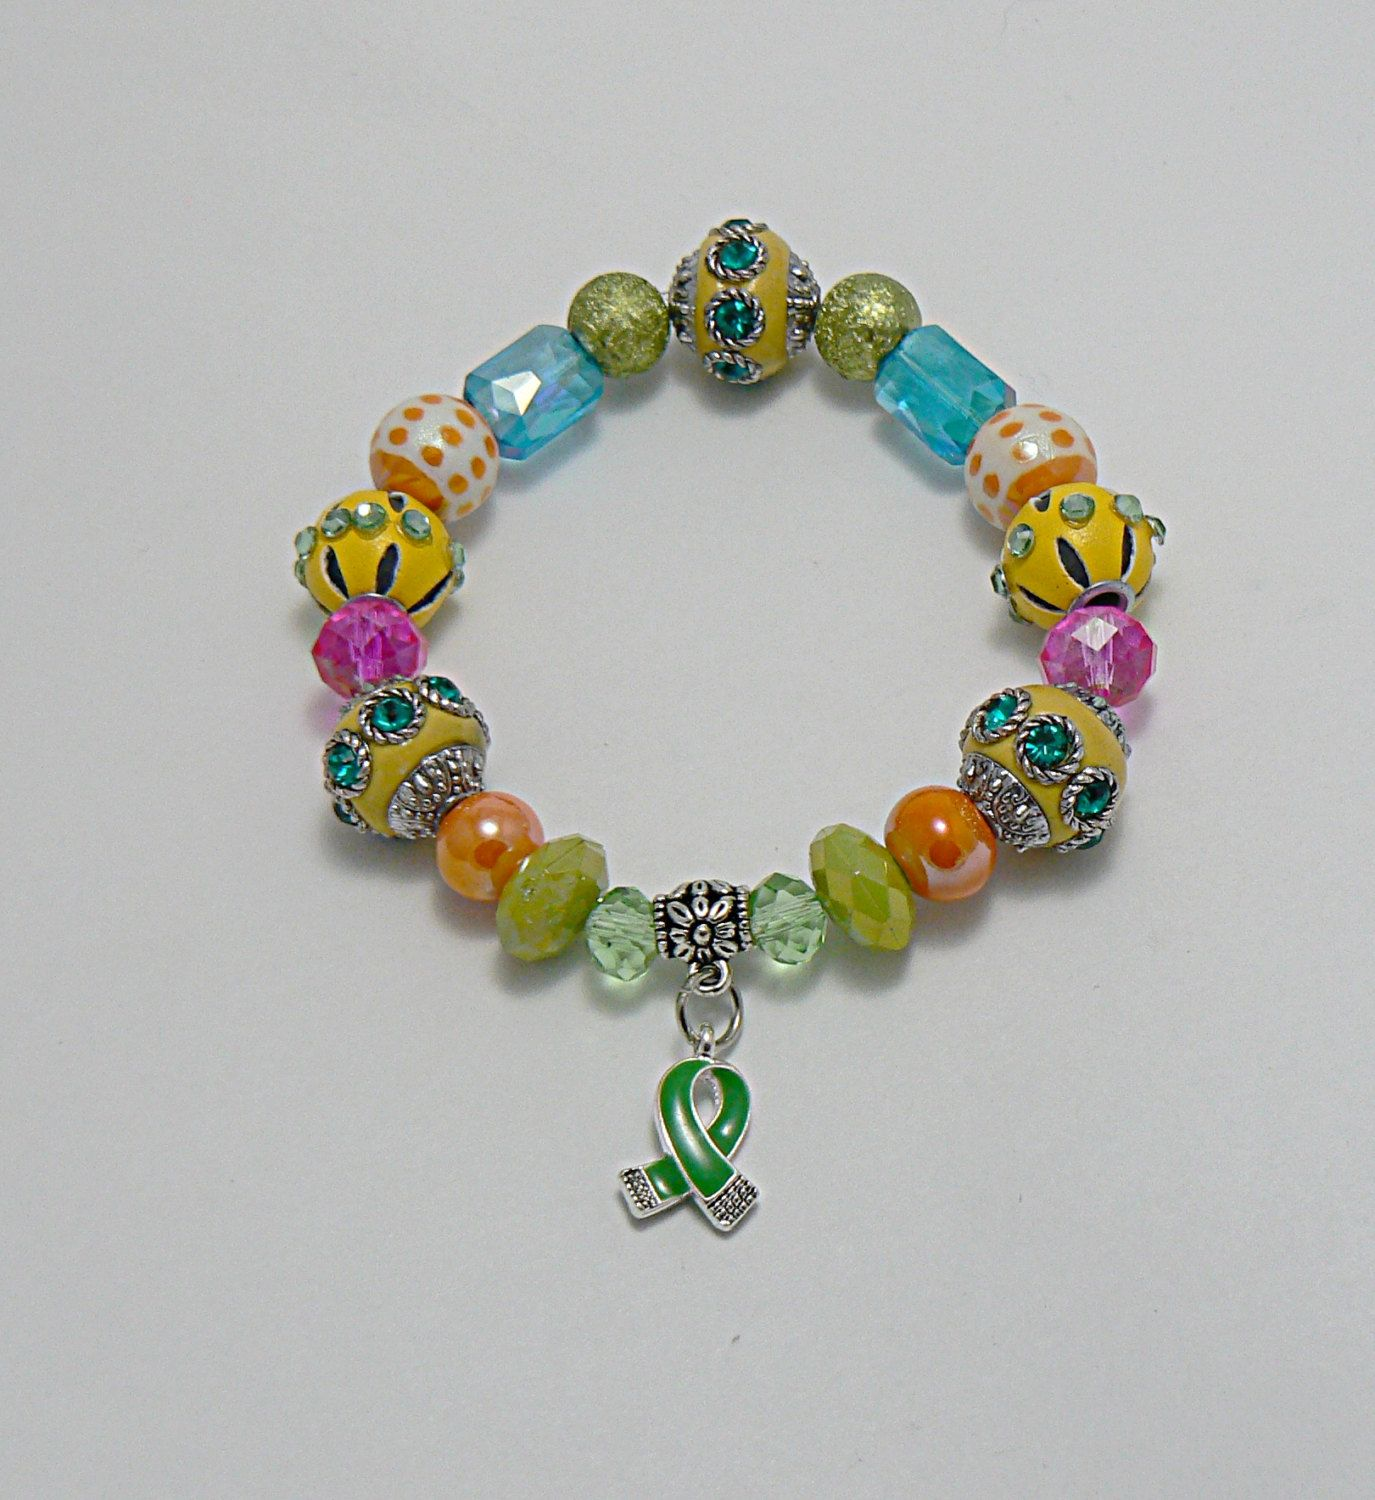 mentalhealthawarenessbracelet awarenessdepot com silicone mental health awareness bracelet